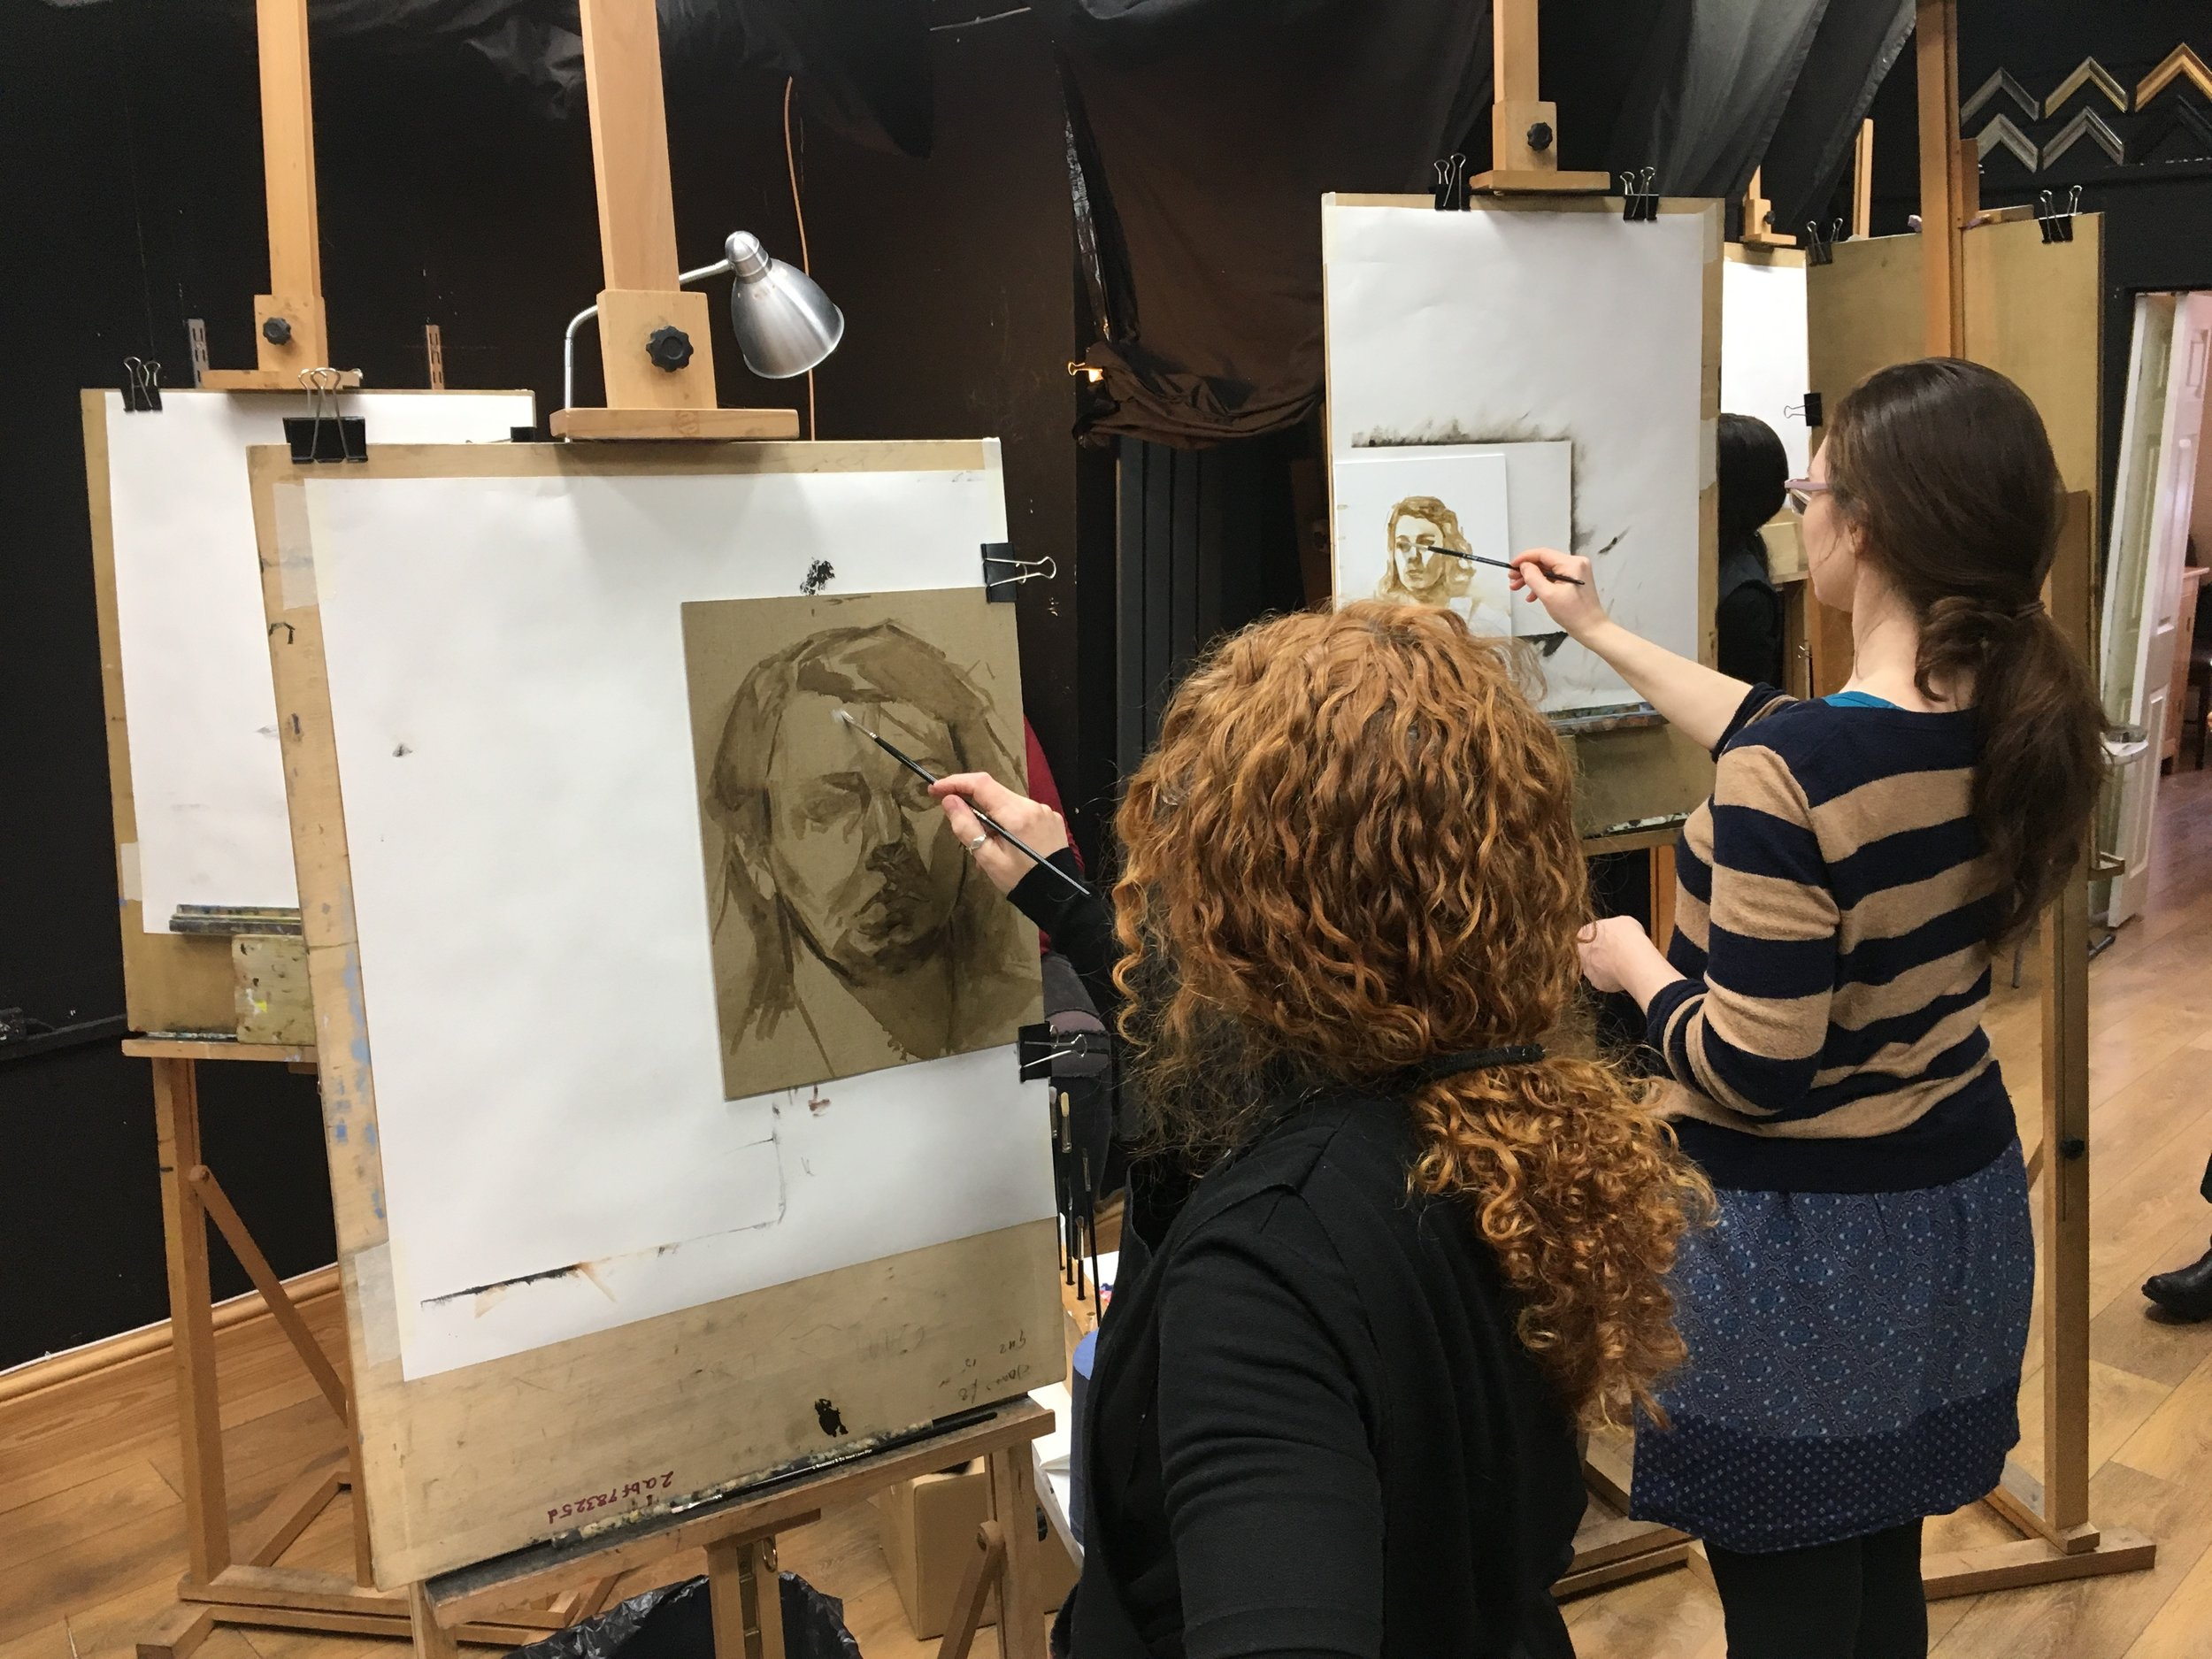 Atelier Painting - Classical Art Academy